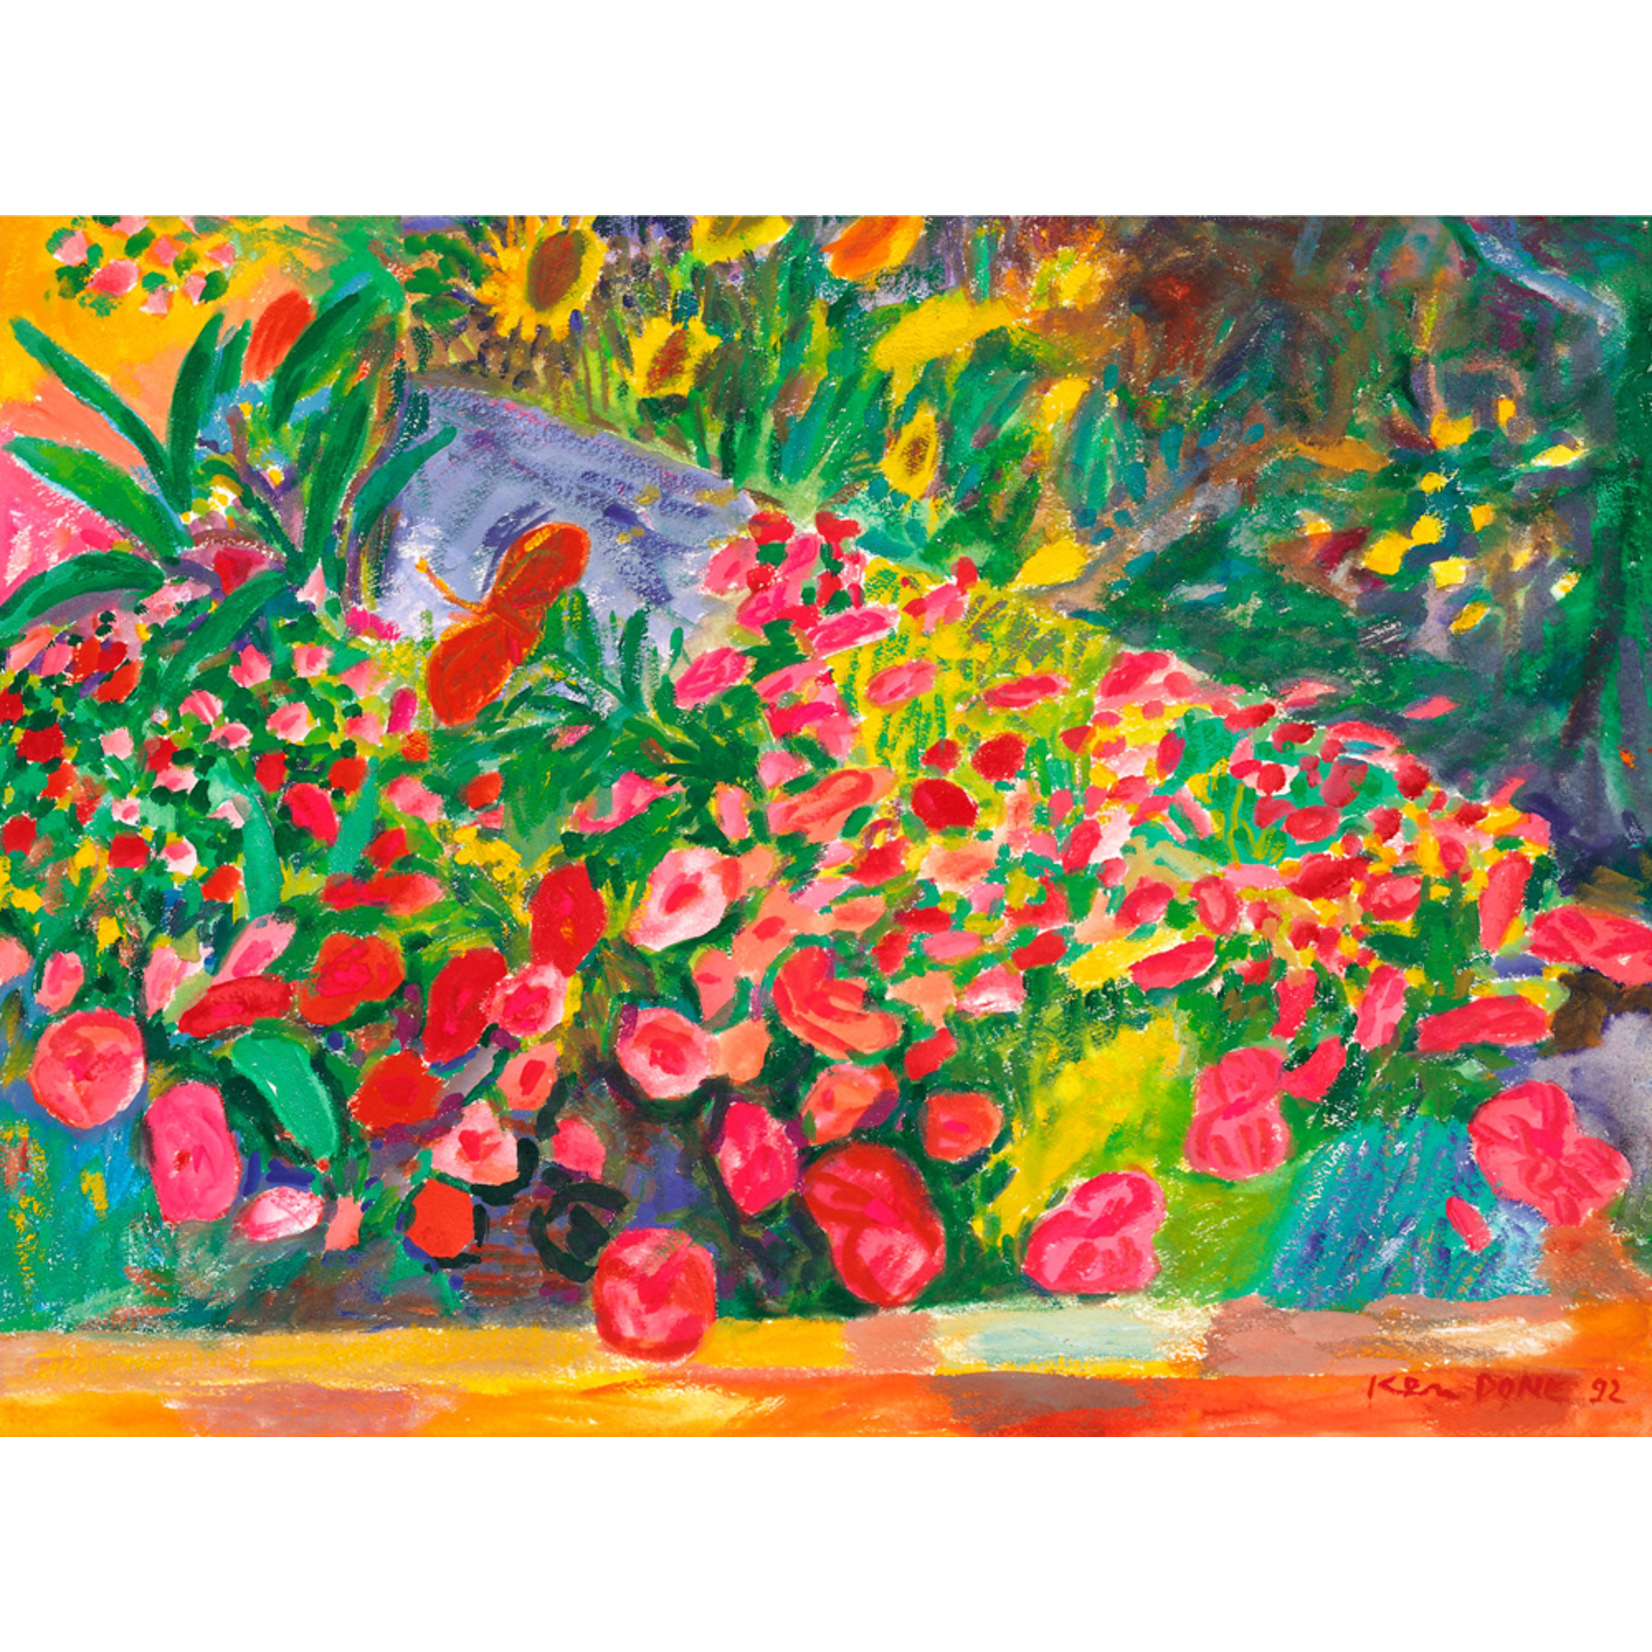 Limited Edition Prints Rocks and flowers, 1992